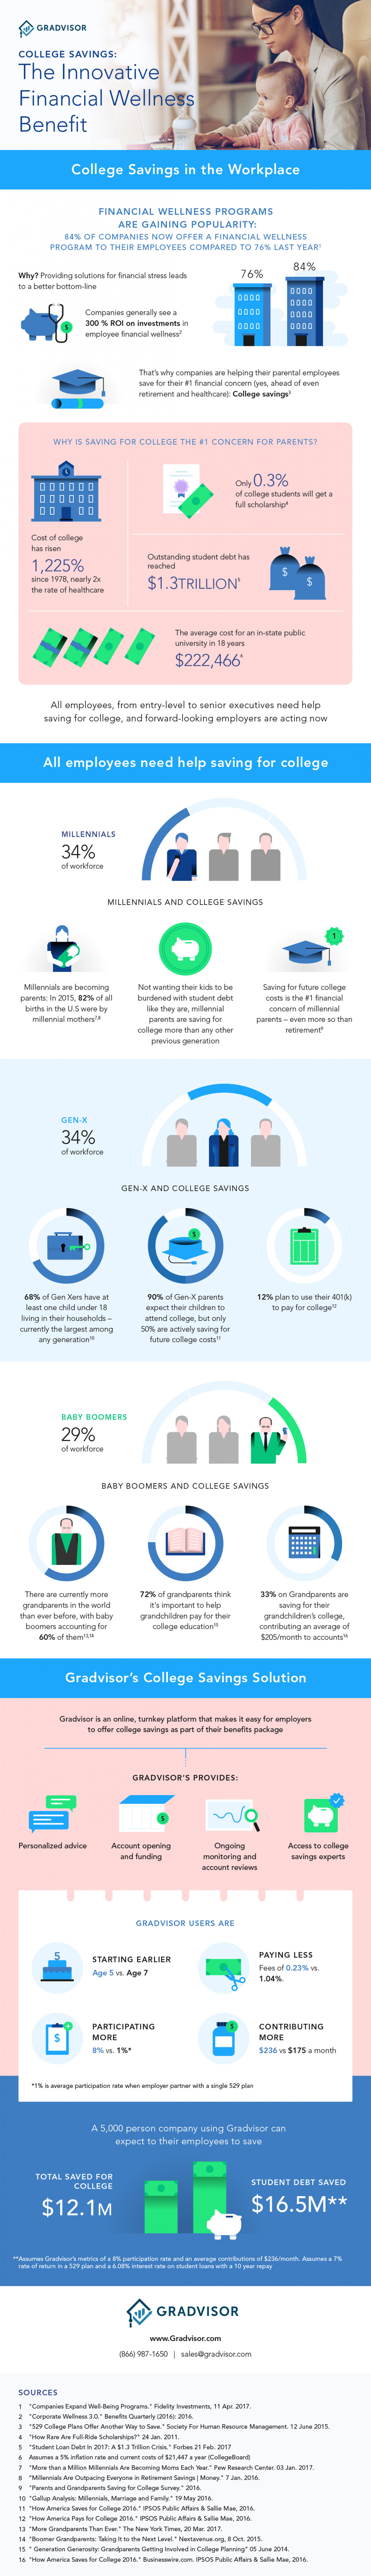 College Savings: The Innovative Financial Wellness Benefit Infographic